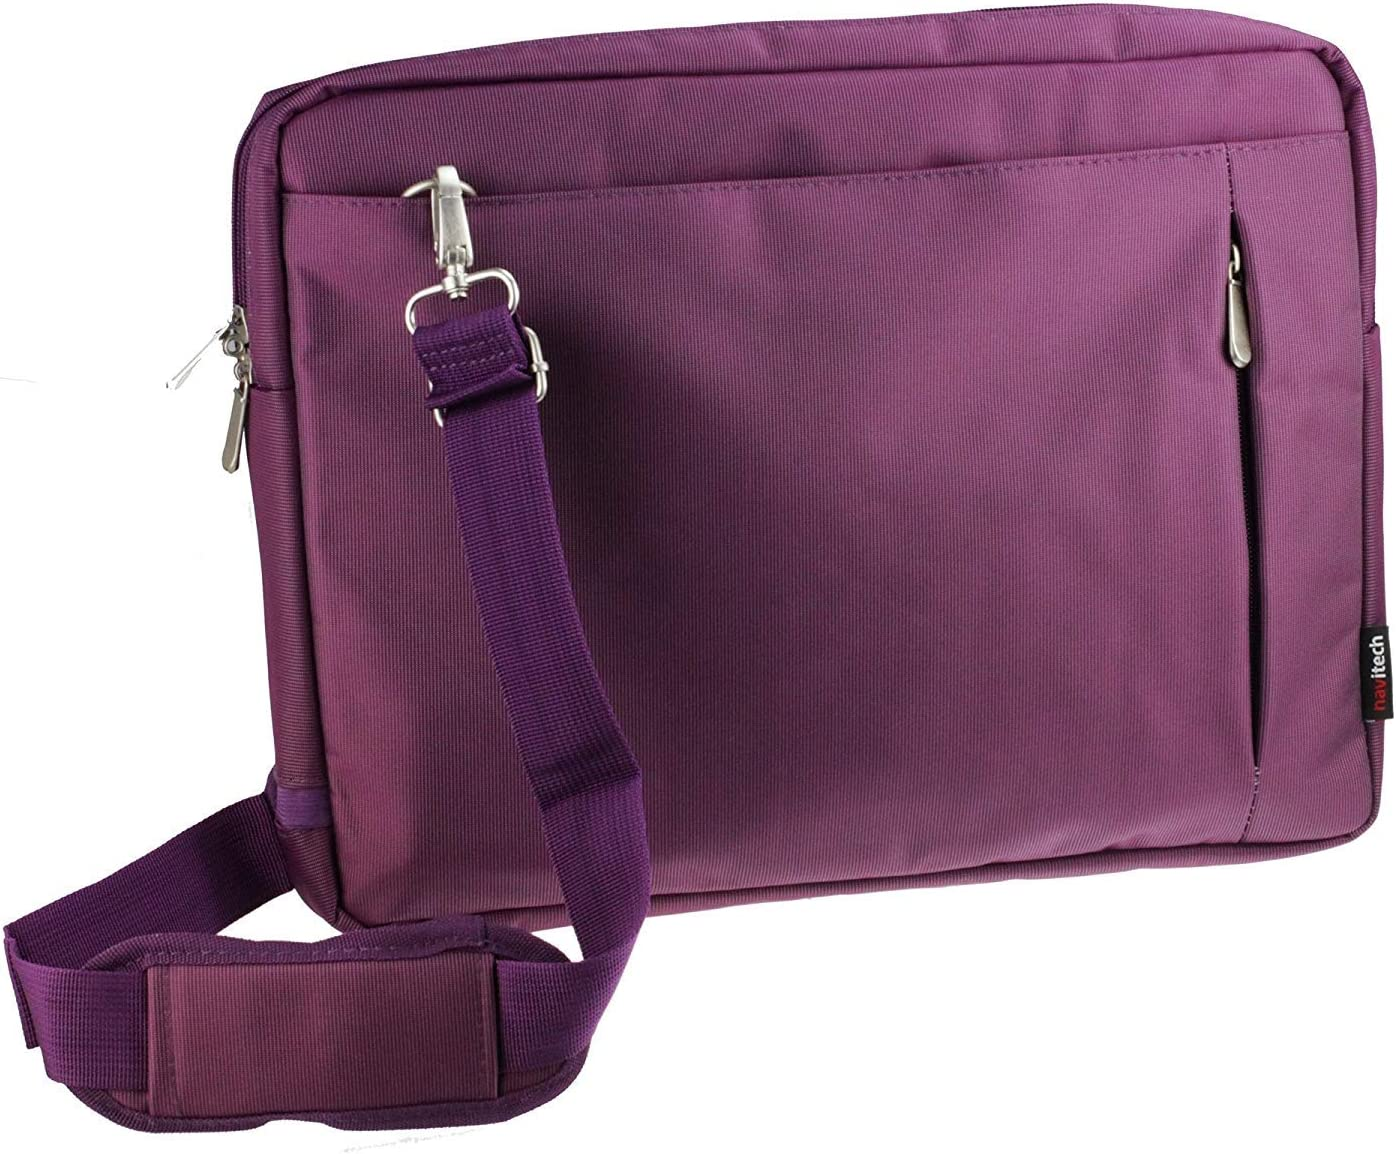 Navitech Purple Graphics Tablet Case//Bag Compatible with The XP-Pen G640 6x4 inch Drawing Tablet